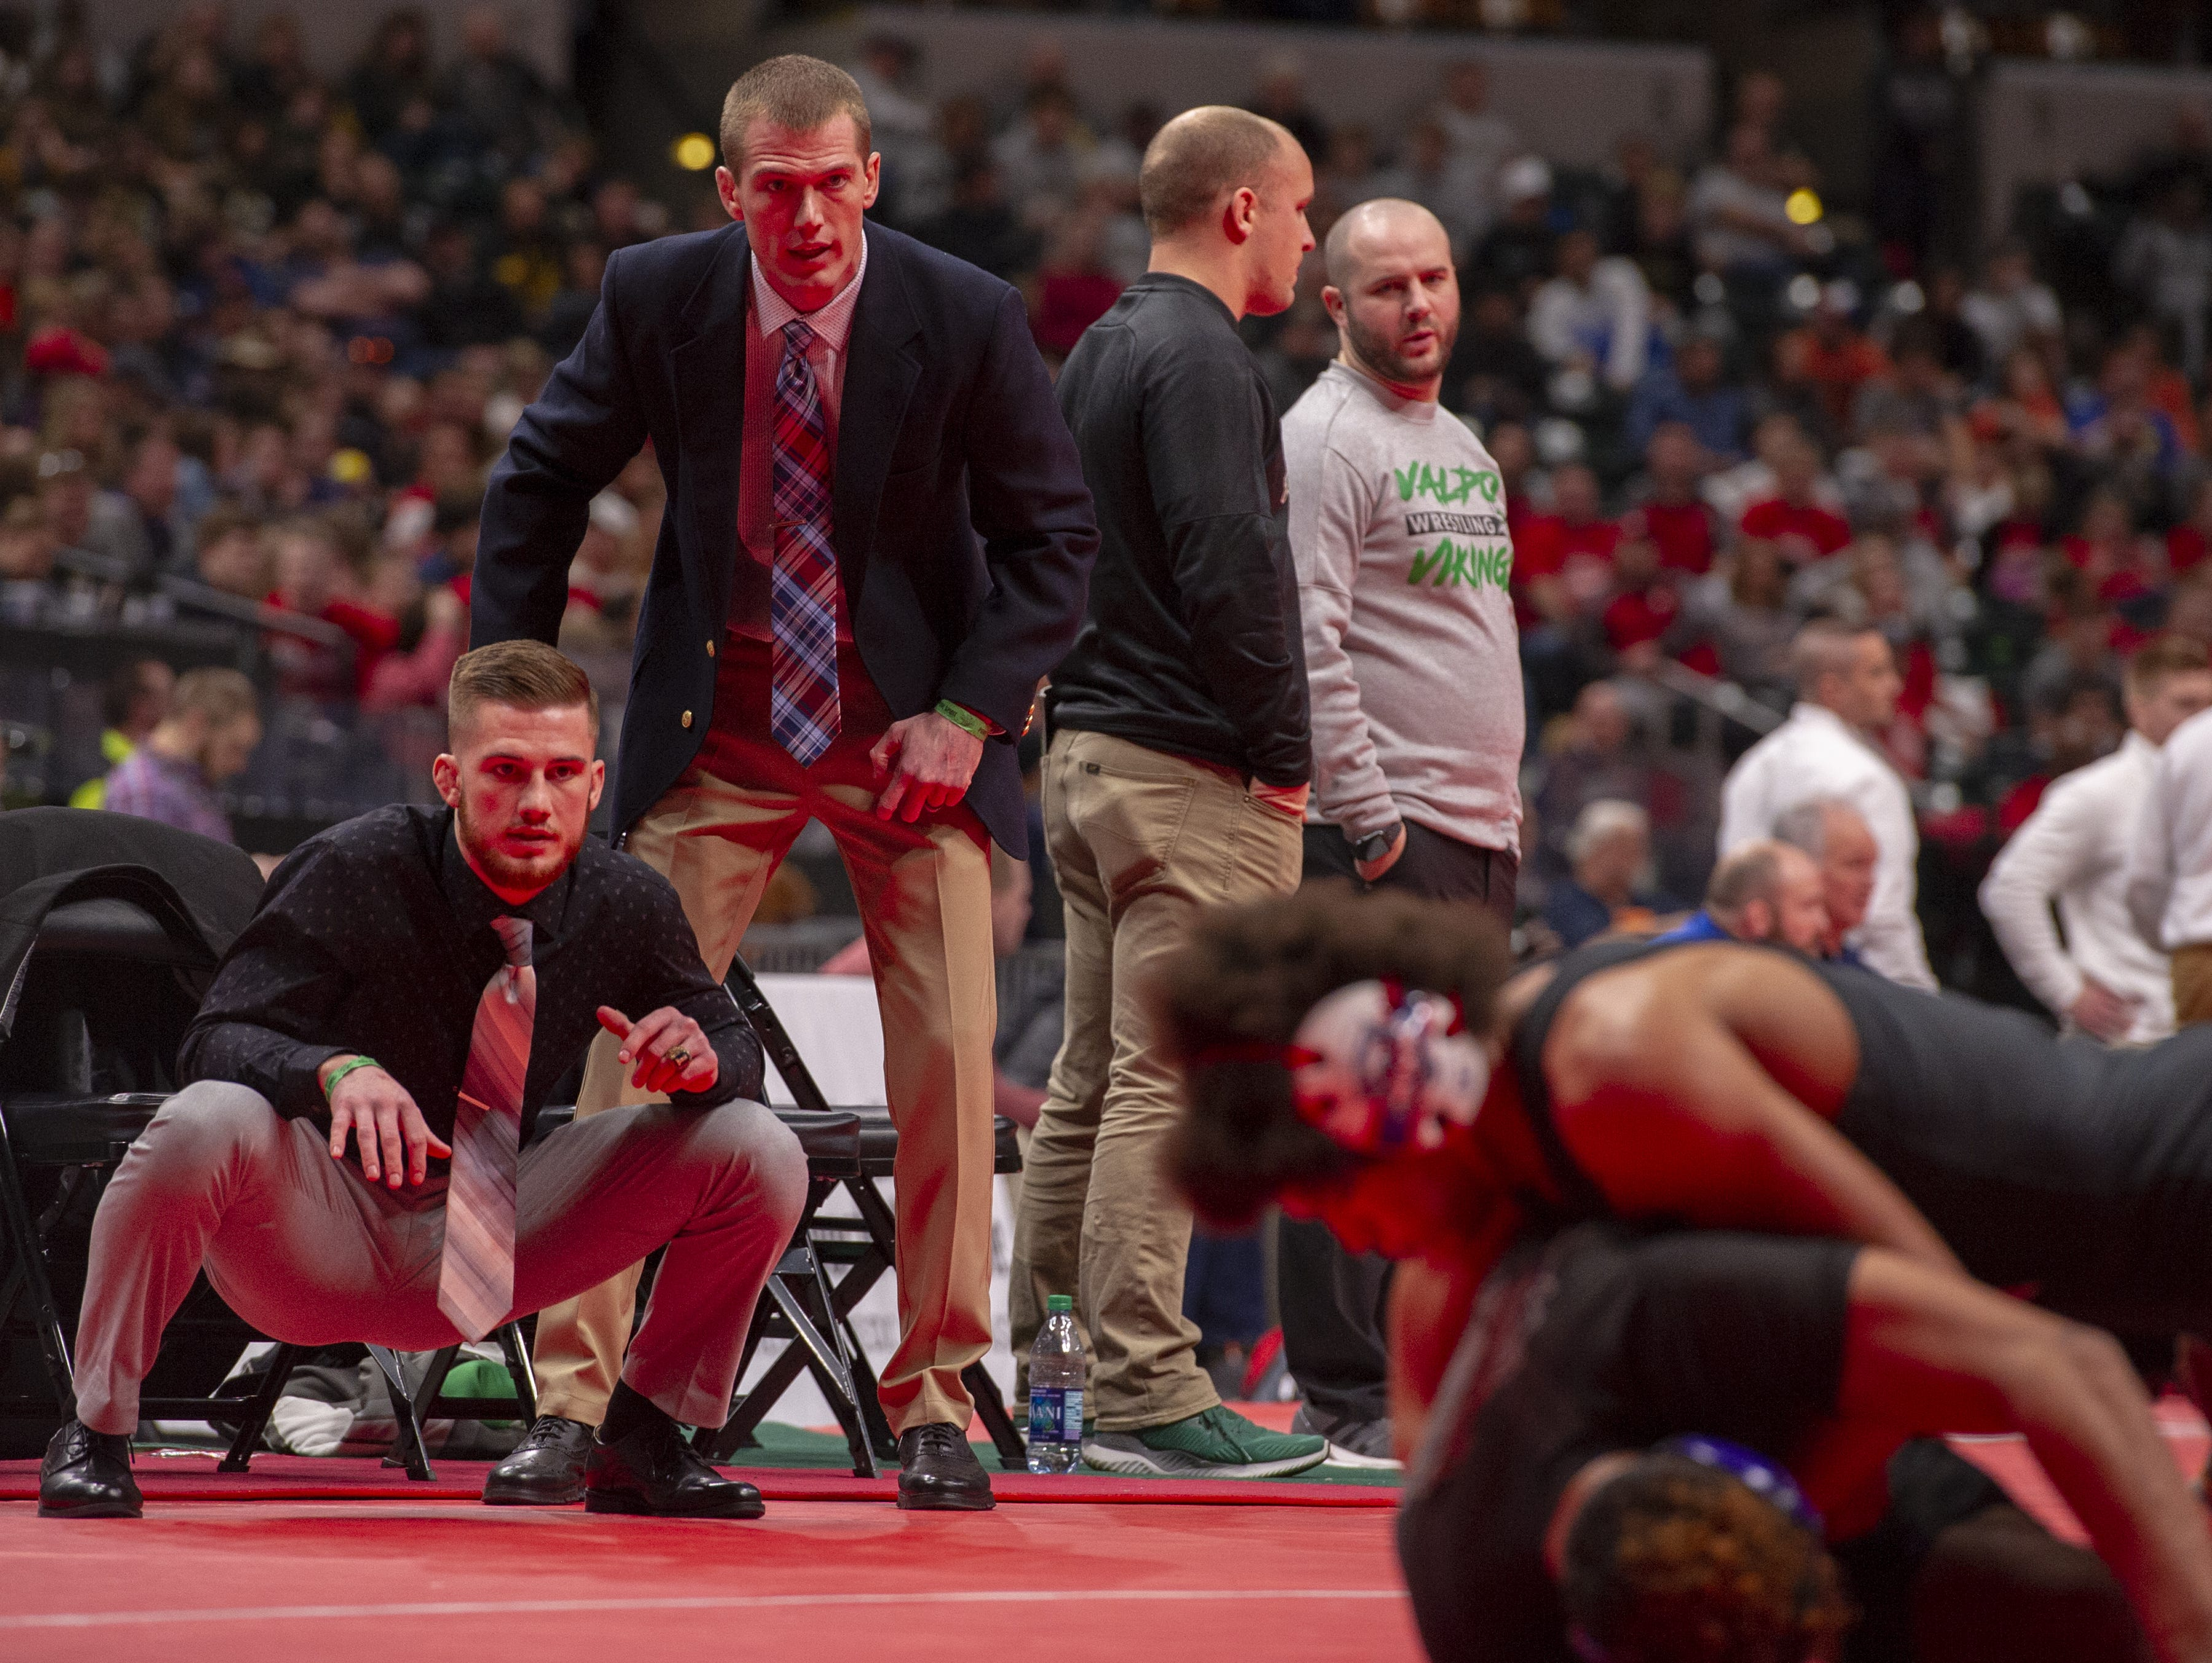 Roncalli High School head coach Wade McClurg, right and assistant coach Riley McClurg, brothers, watch as Elija Mahan competes in the 170-pound weight class during the first day of competition in the 81st Annual IHSAA Wrestling State Finals at Bankers Life Fieldhouse in Indianapolis, Friday, Feb. 15, 2019.